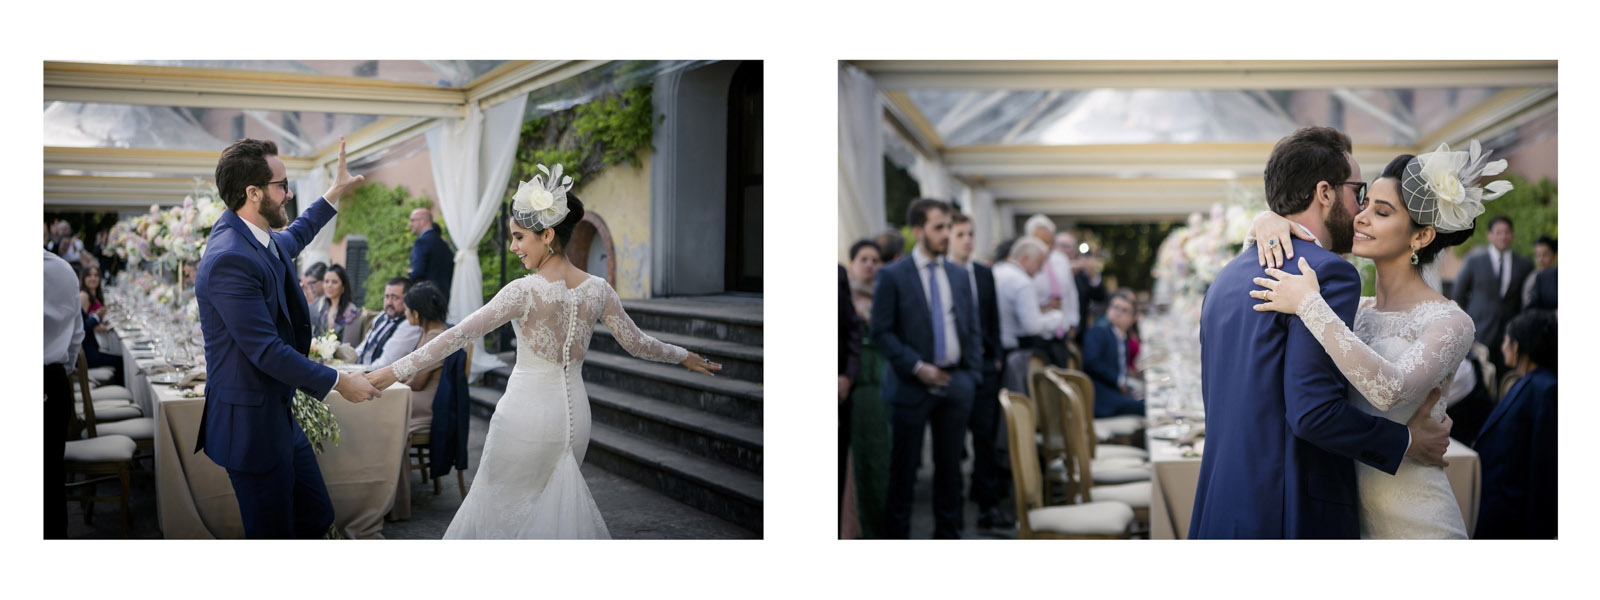 David Bastianoni wedding photographer